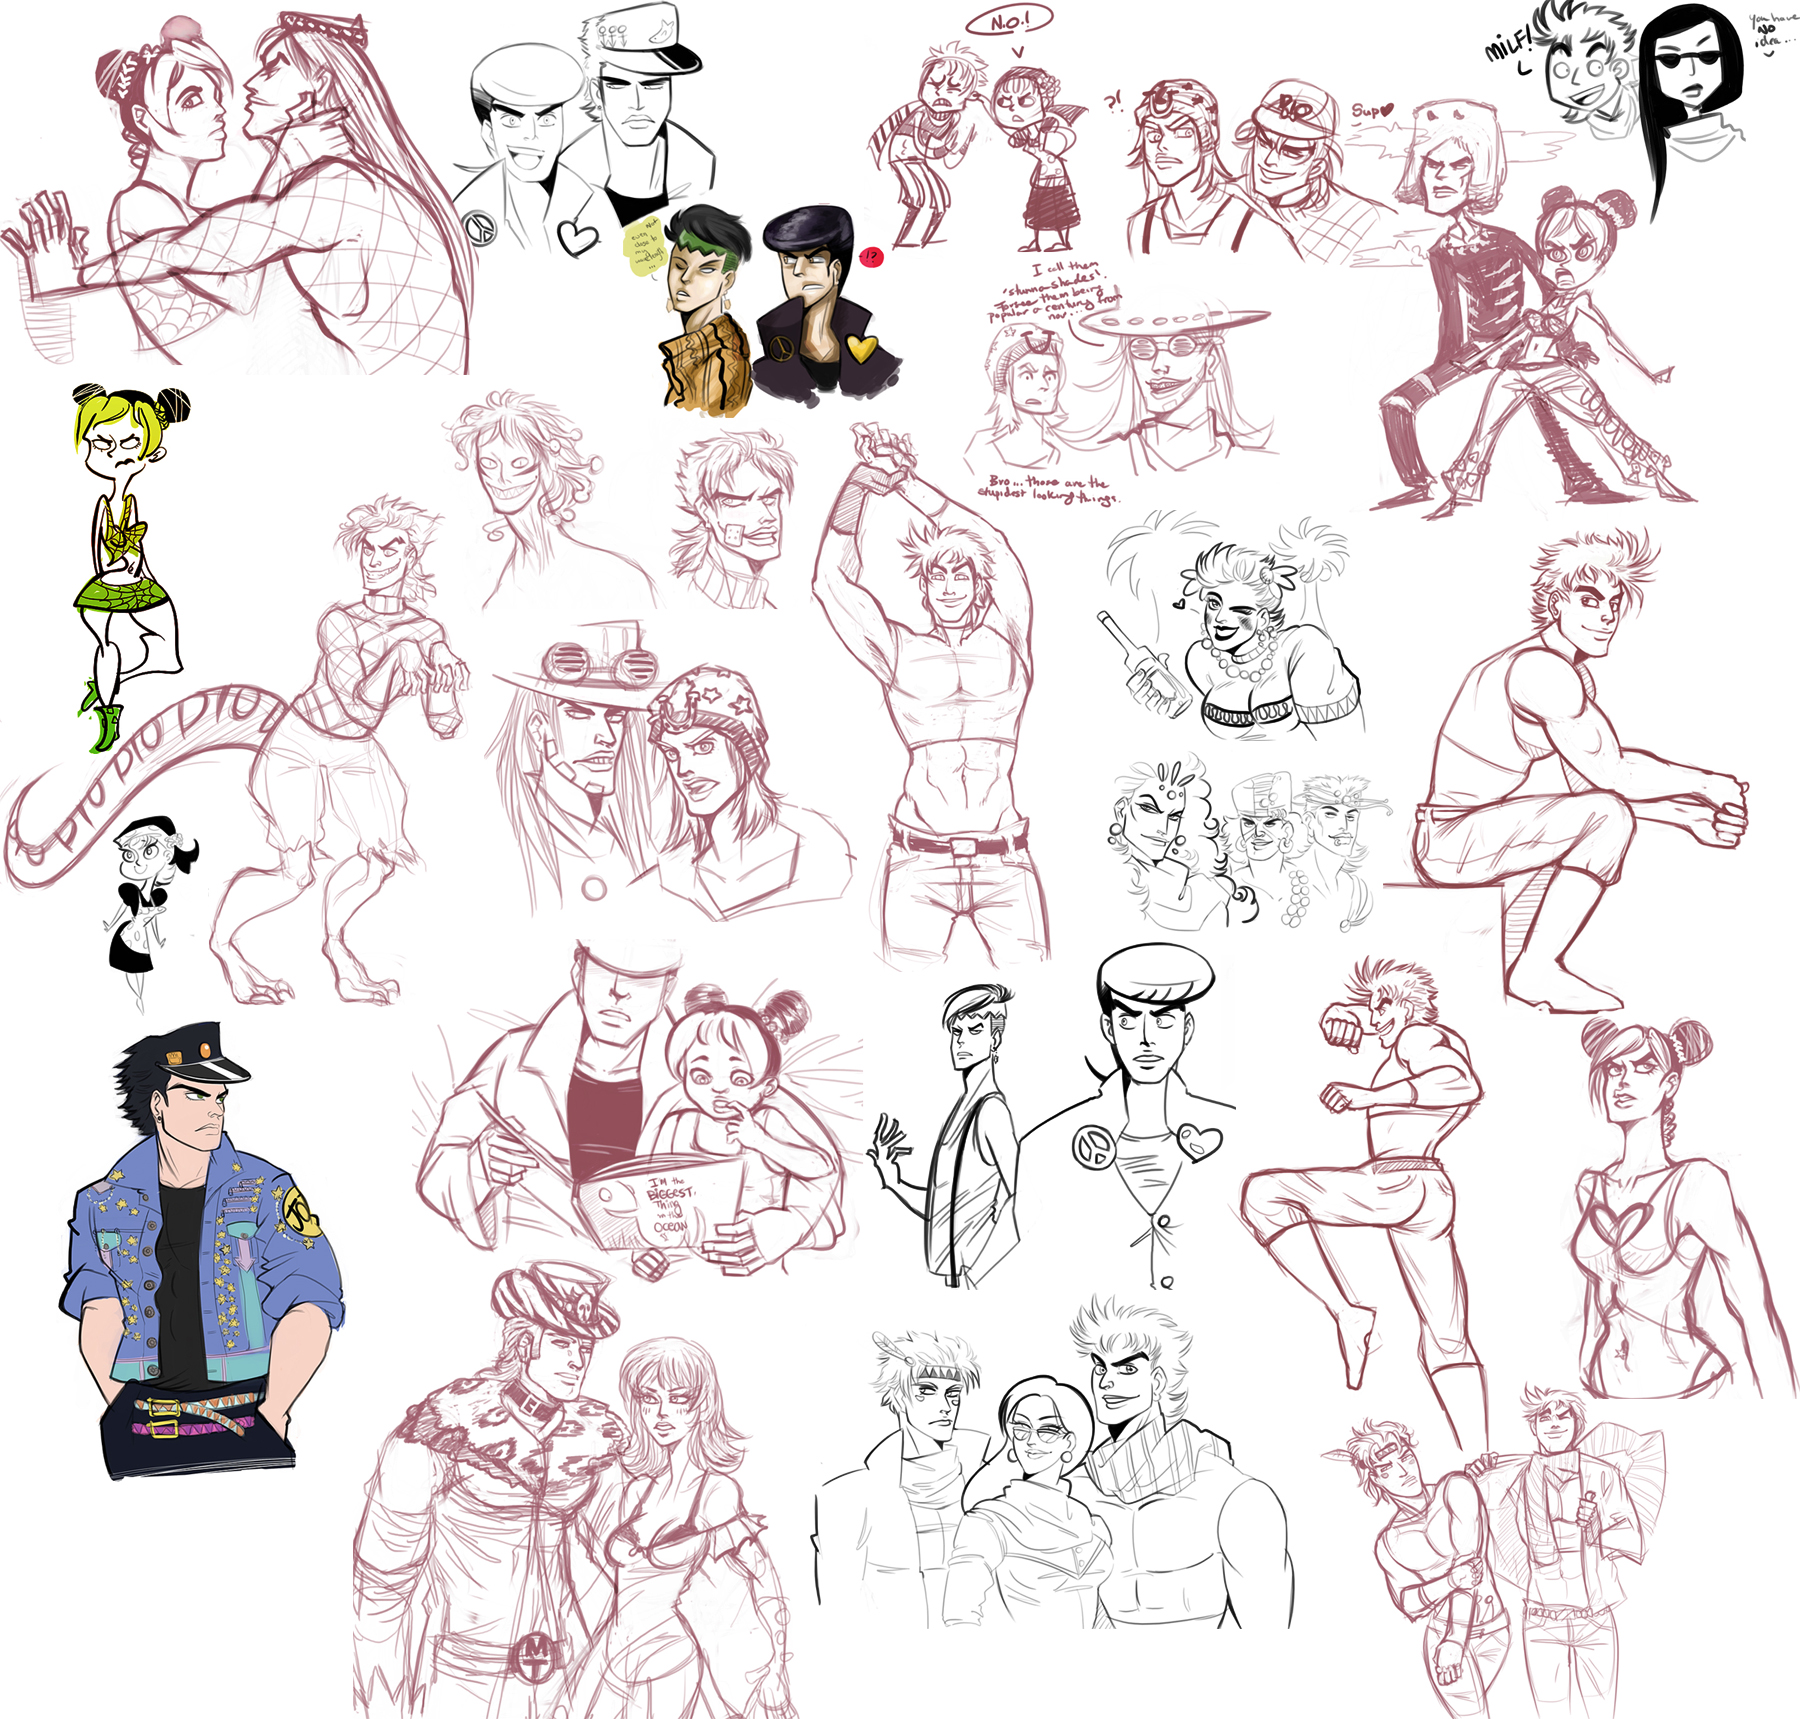 jojo - sketchdump by spoonybards